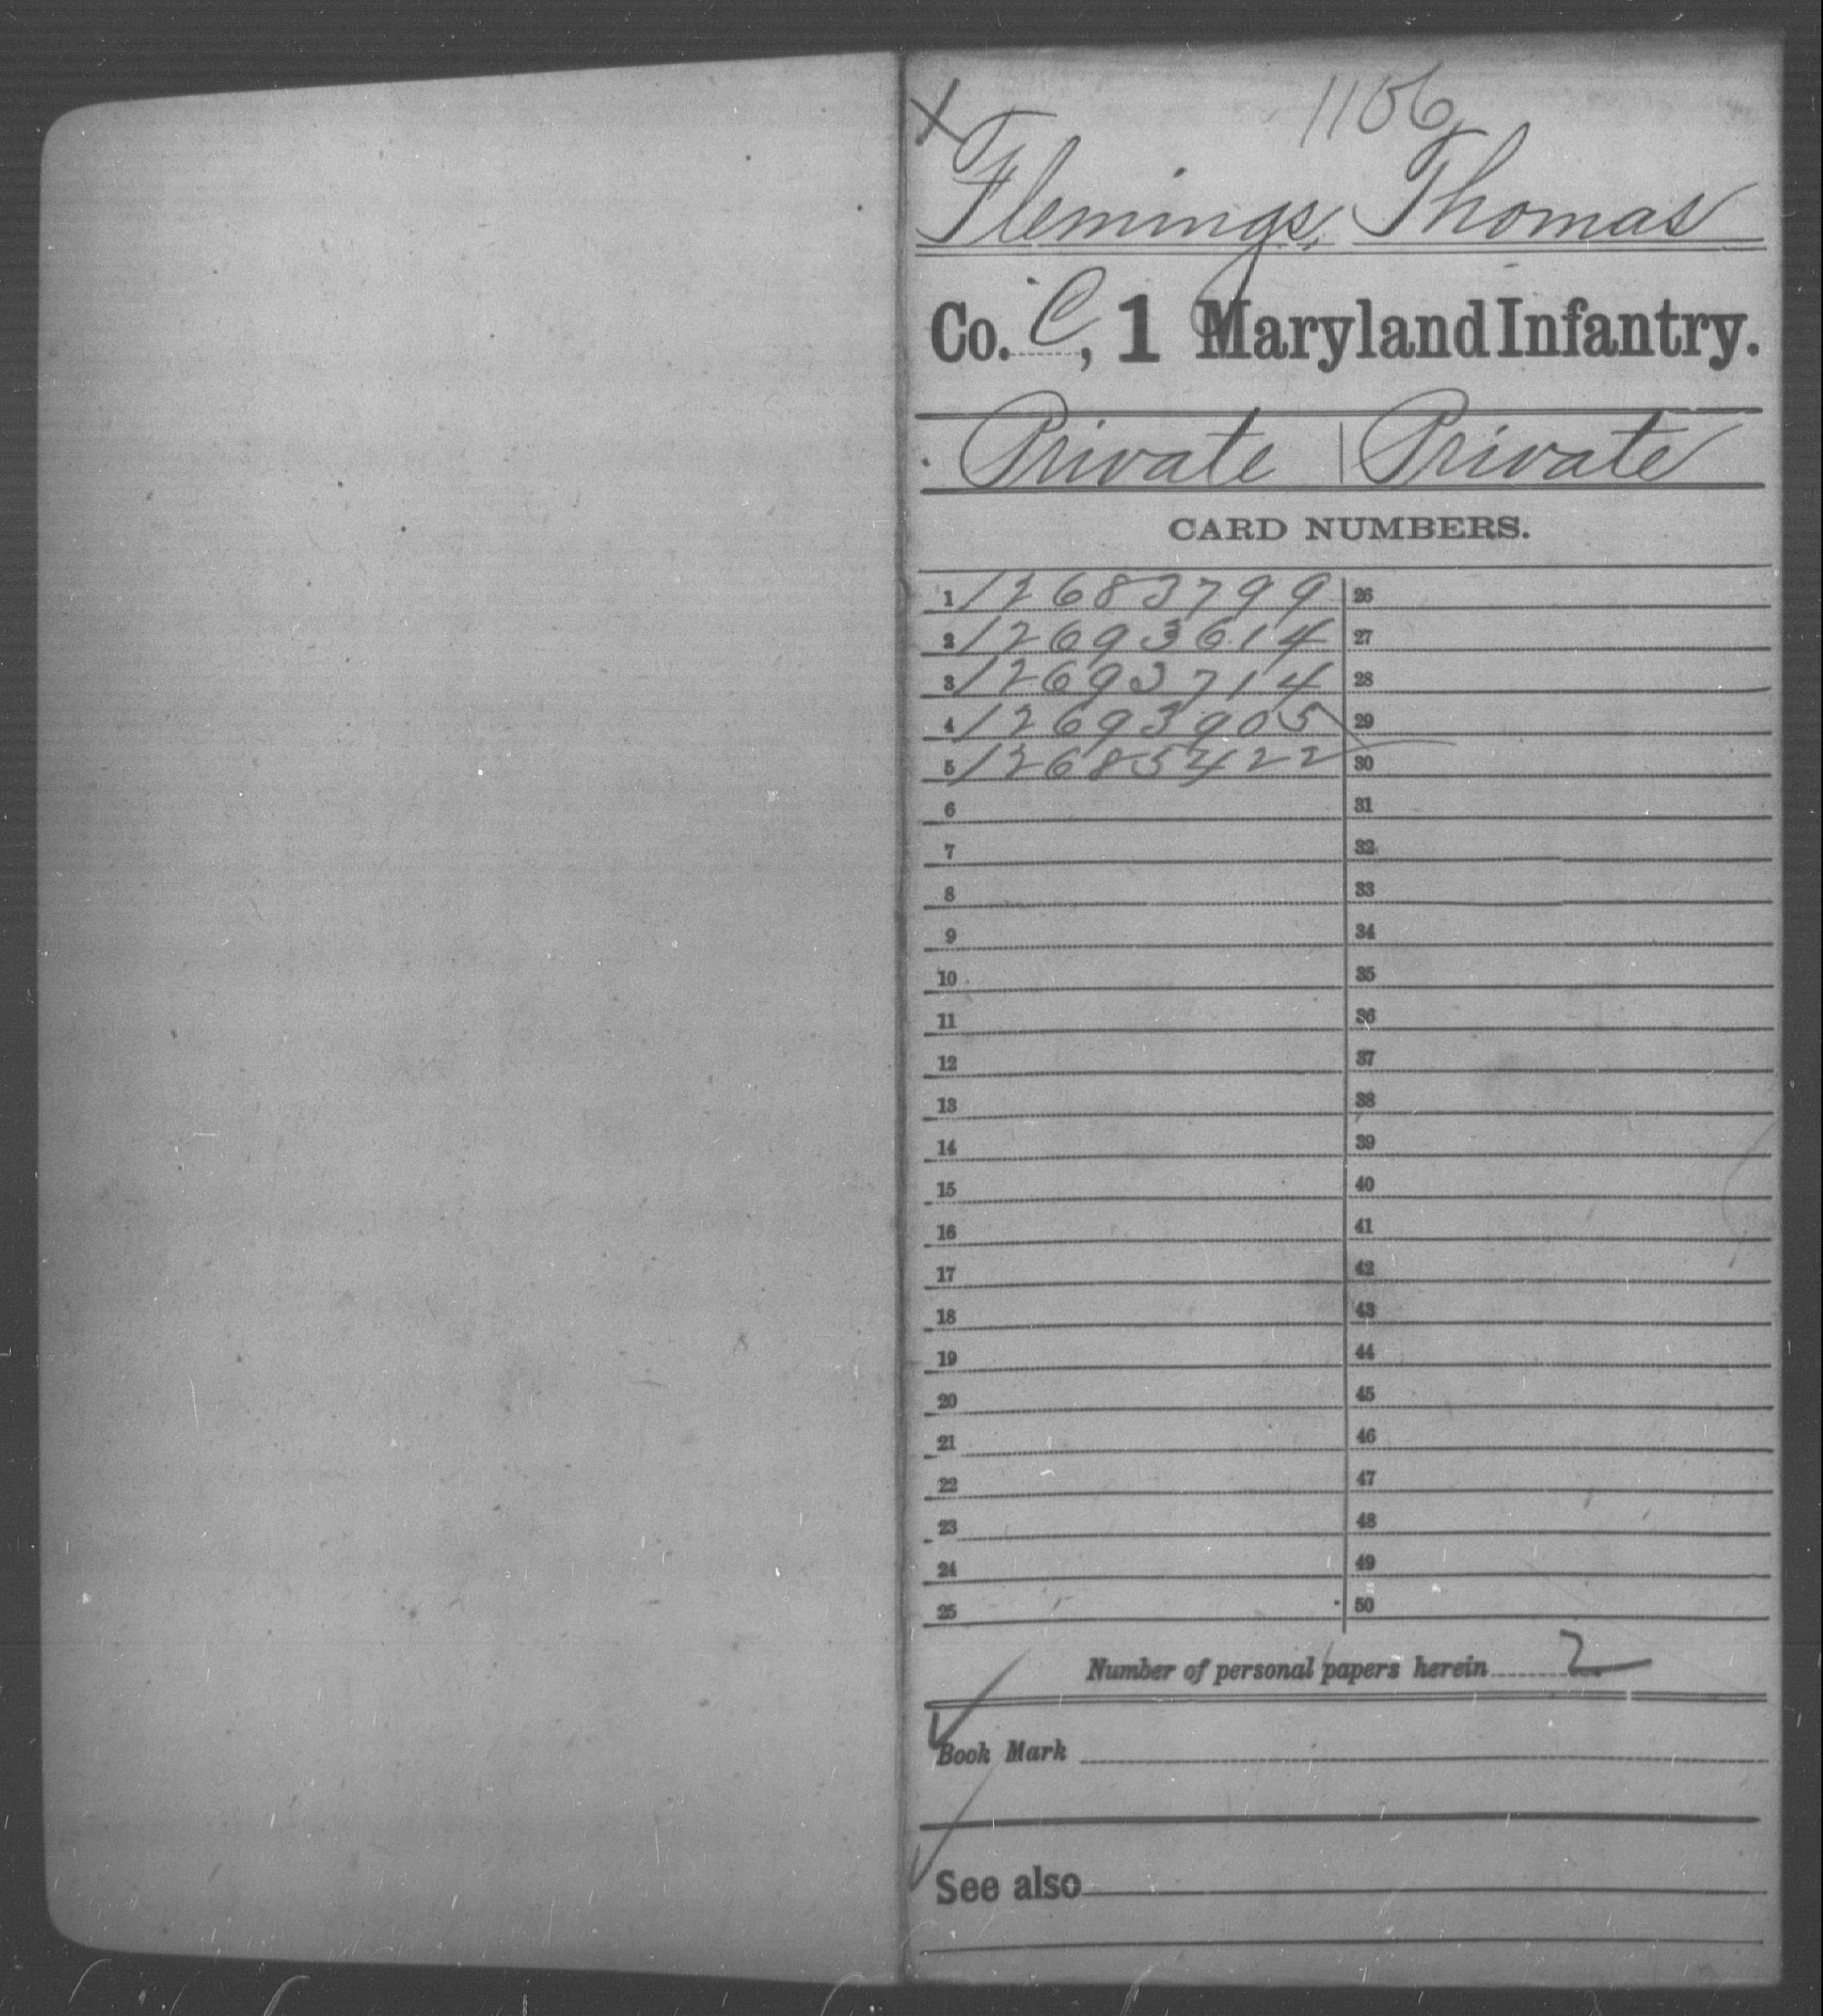 [Maryland] Flemings, Thomas - Age 26, Year: 1865 - First Infantry, Bas-Z